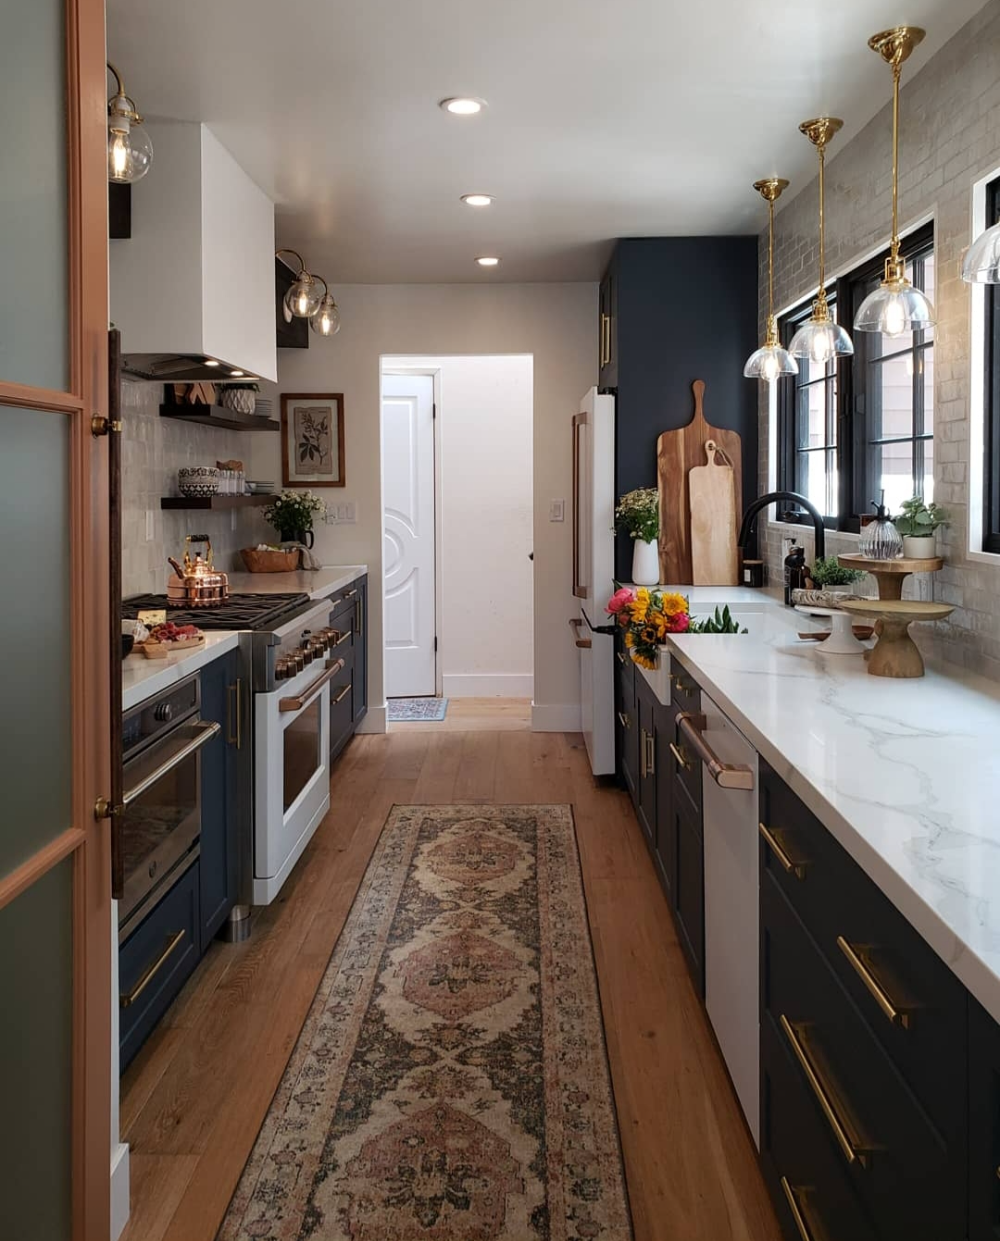 Kitchen Remodel Before & After plus Sources